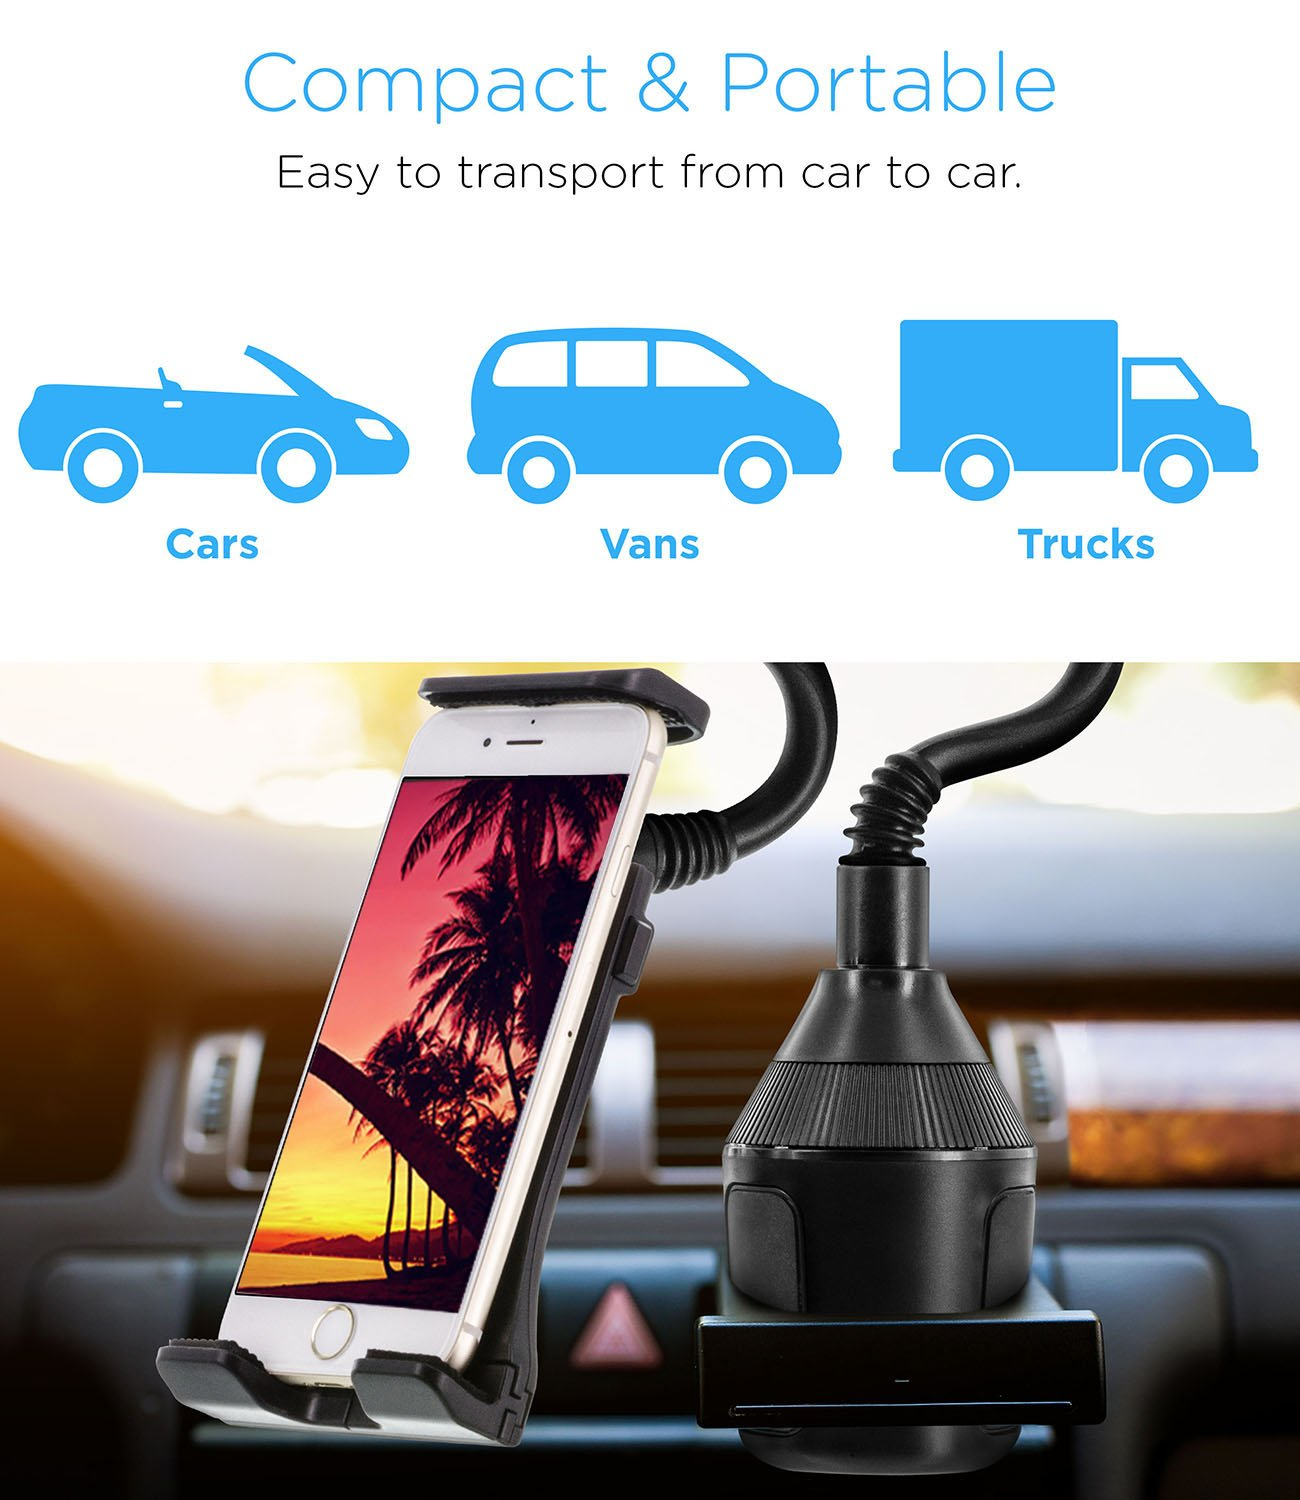 360/° Rotatable Cardle Phone Mount Cups Solid Grip Holders with Clamps Compatible for iPhone X MP3 Samsung Galaxy S9 and All Smartphones Xs Xs Max GPS etc Aduro U-Grip Cup Holder Phone Mount